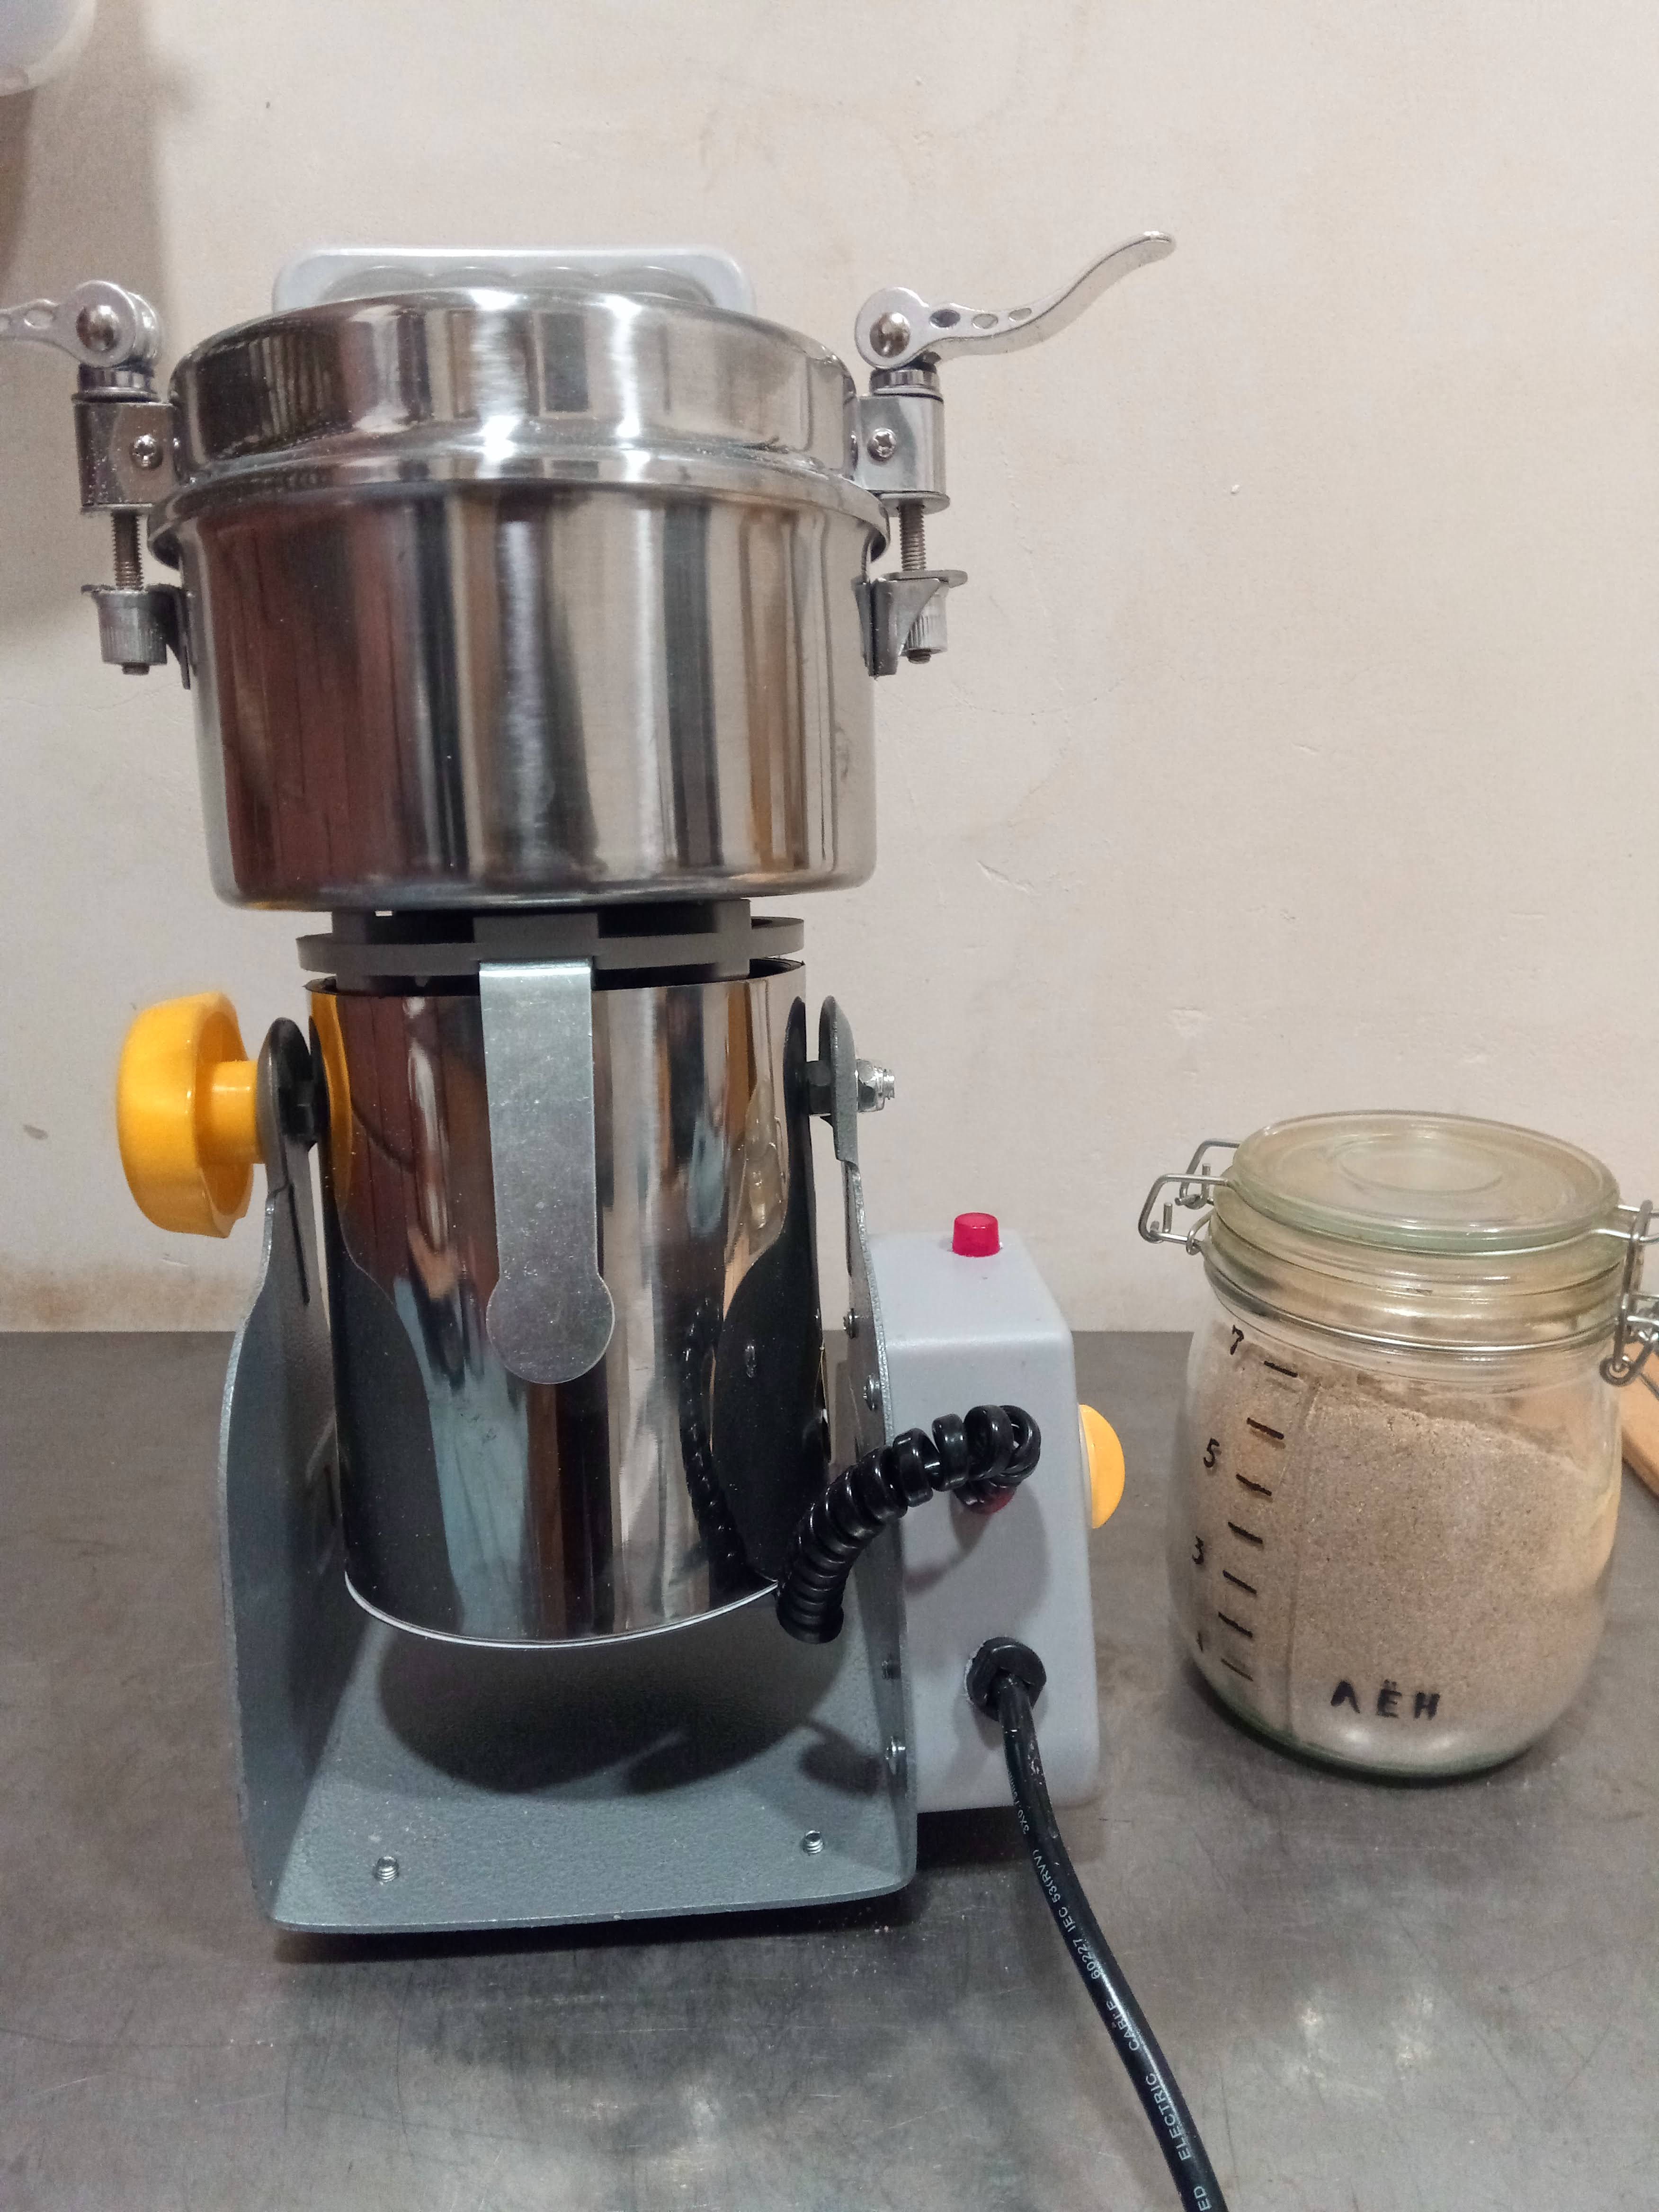 800g Grains Spices Hebals Cereals Coffee Dry Food Grinder Miller Grinding Machine gristmill home medicine flour powder crusher|grinding coffee machine|coffee grinding machinecoffee grind - AliExpress